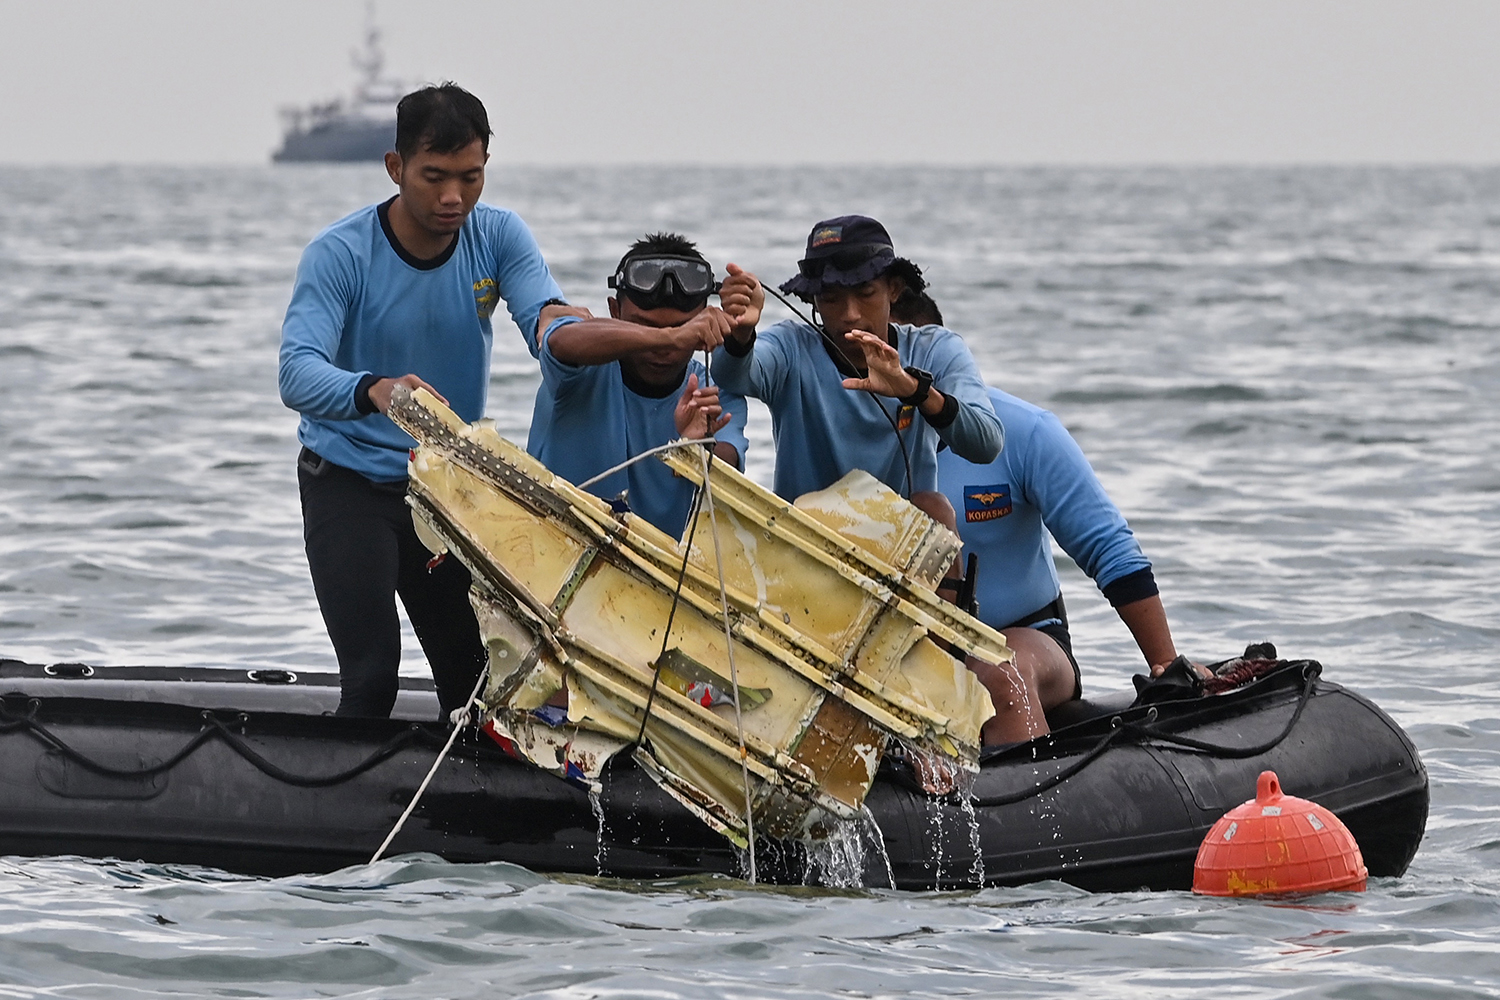 Indonesian Navy divers hold wreckage from Sriwijaya Air Flight 182 during a search-and-rescue operation at sea near Lancang island on Jan. 10. The Boeing 737-500 crashed shortly after takeoff from the Jakarta airport the day before. ADEK BERRY/AFP via Getty Images